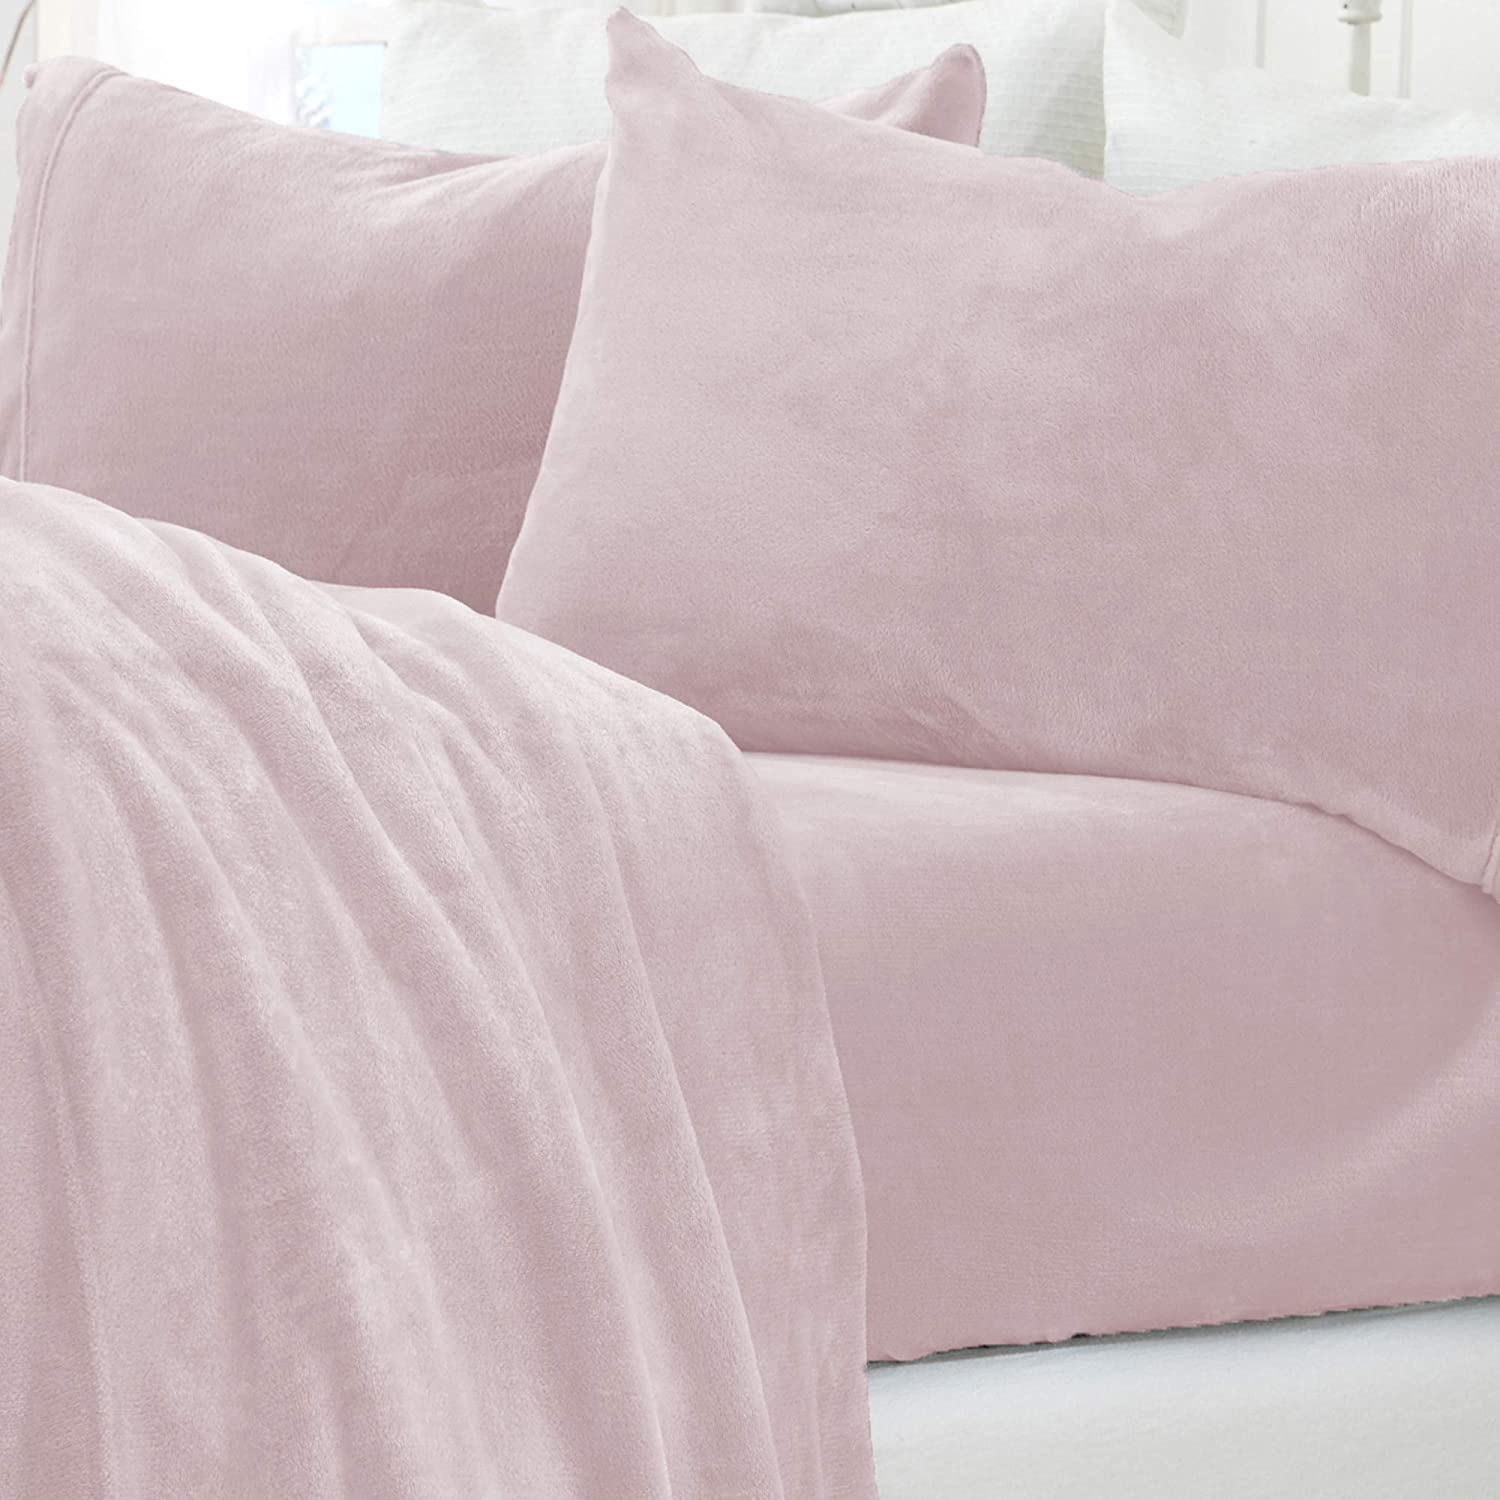 Micro Fleece Extra Soft Cozy Velvet Plush Sheet Set. Deluxe Bed Sheets with Deep Pockets. Velvet Luxe Collection (Queen, Blush Pink)